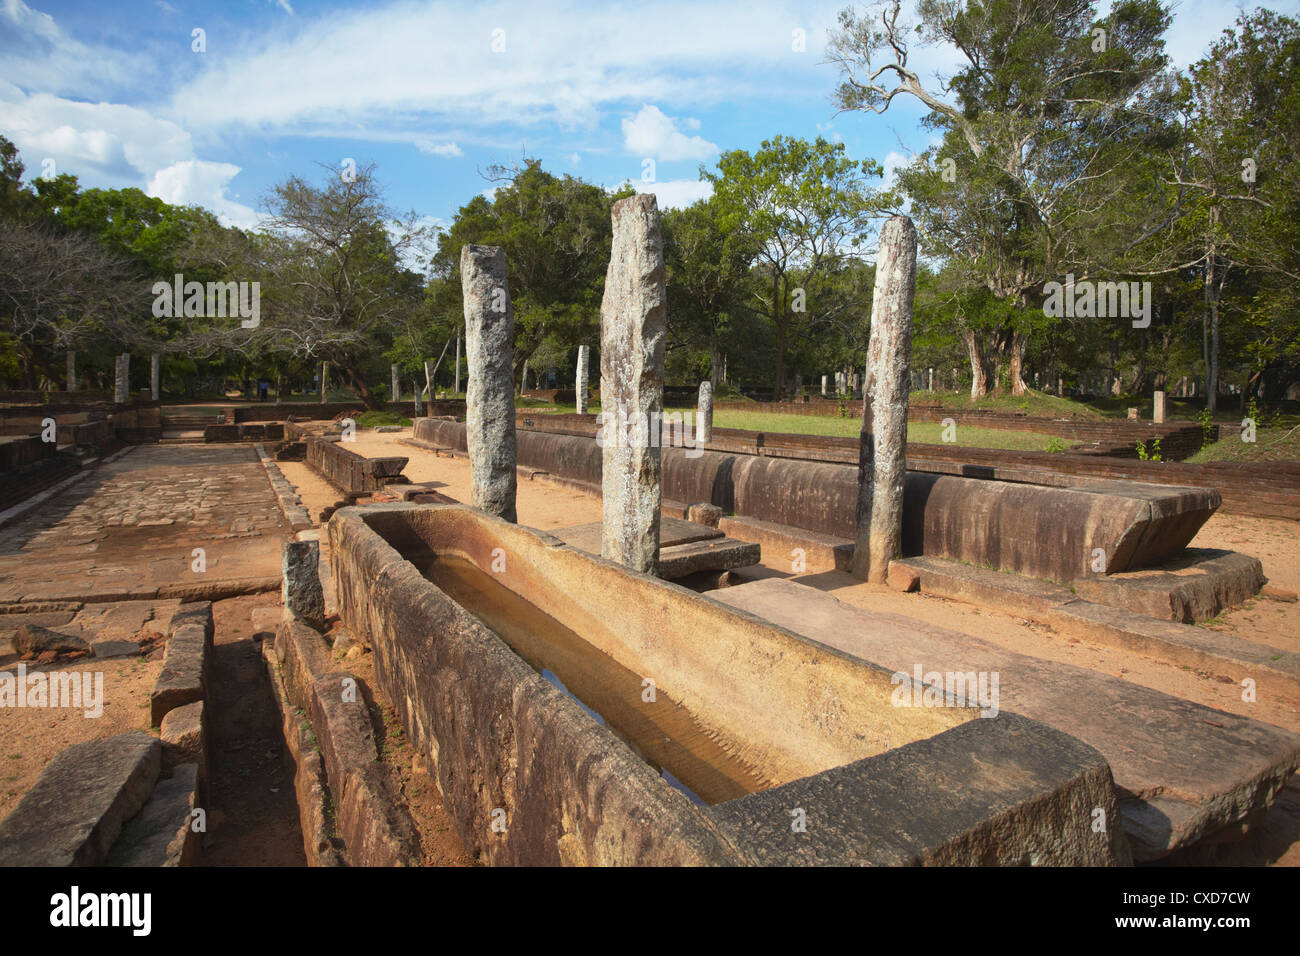 Rice trough inside remains of monastic refectory, Northern Ruins, Anuradhapura, North Central Province, Sri Lanka - Stock Image